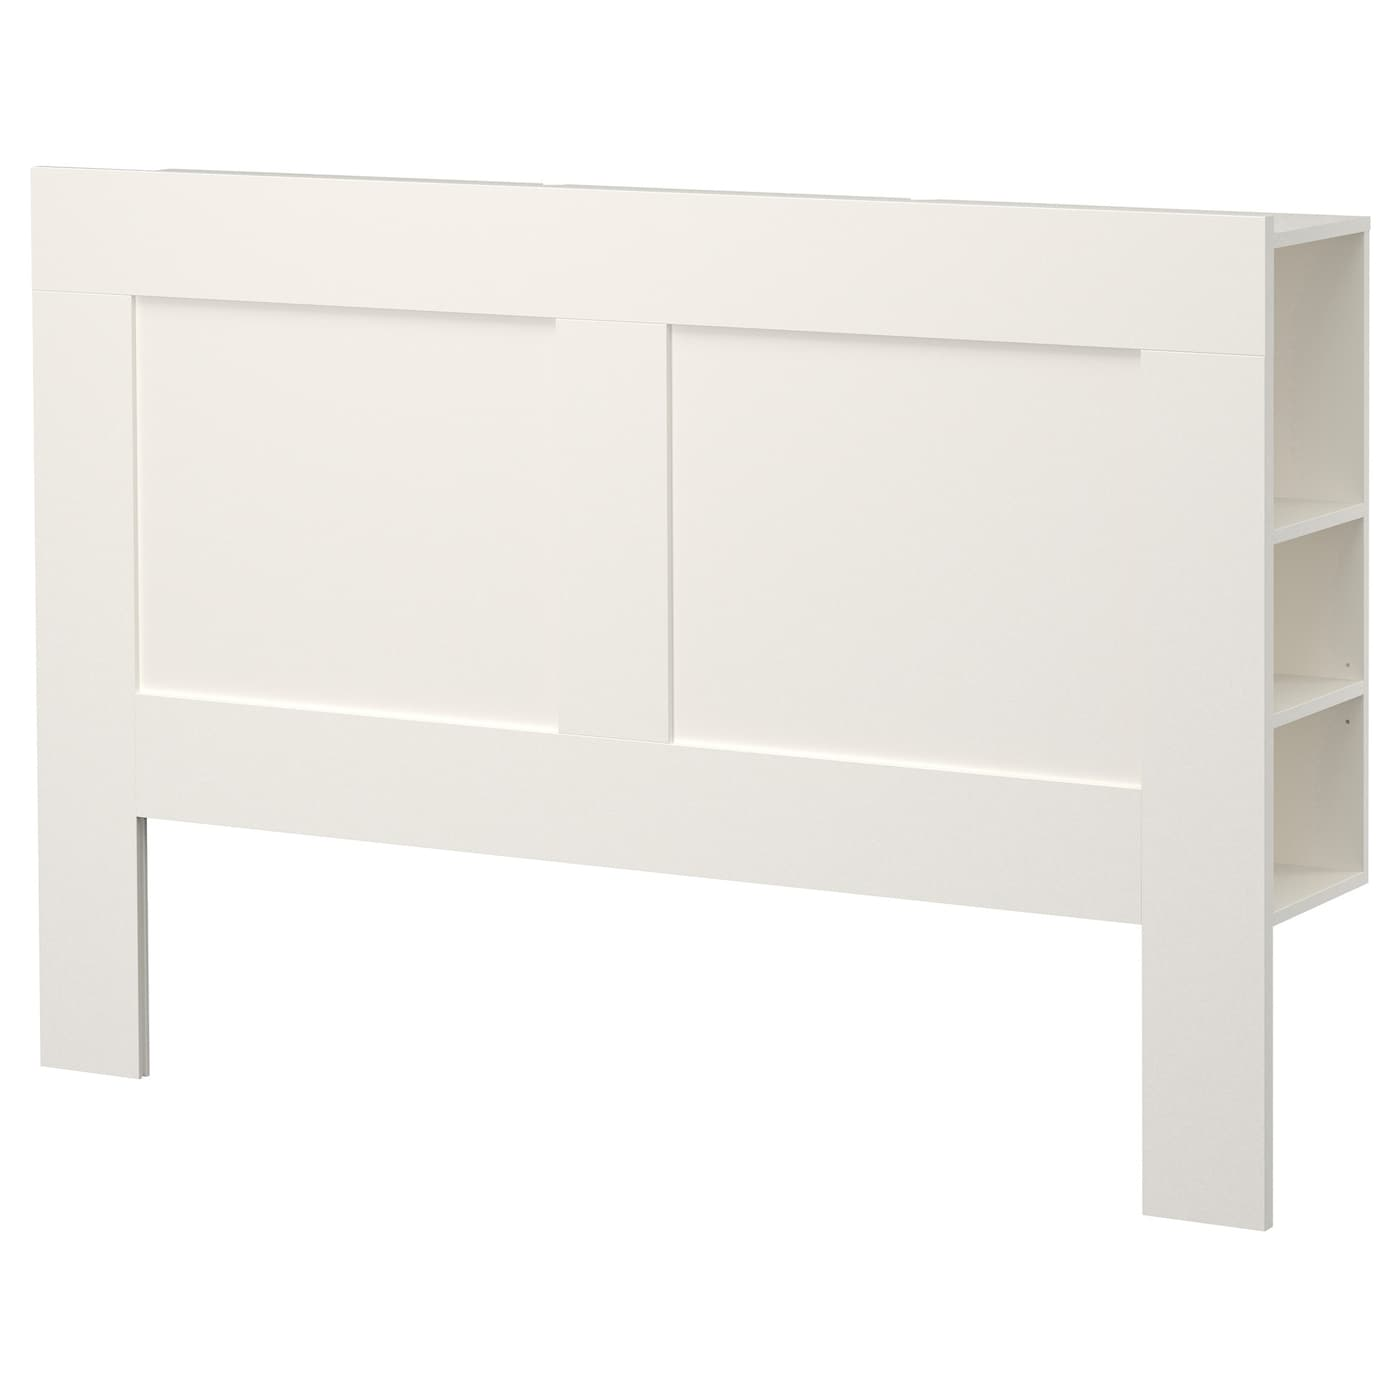 Brimnes headboard with storage compartment white standard double ikea - Coussins tete de lit ikea ...